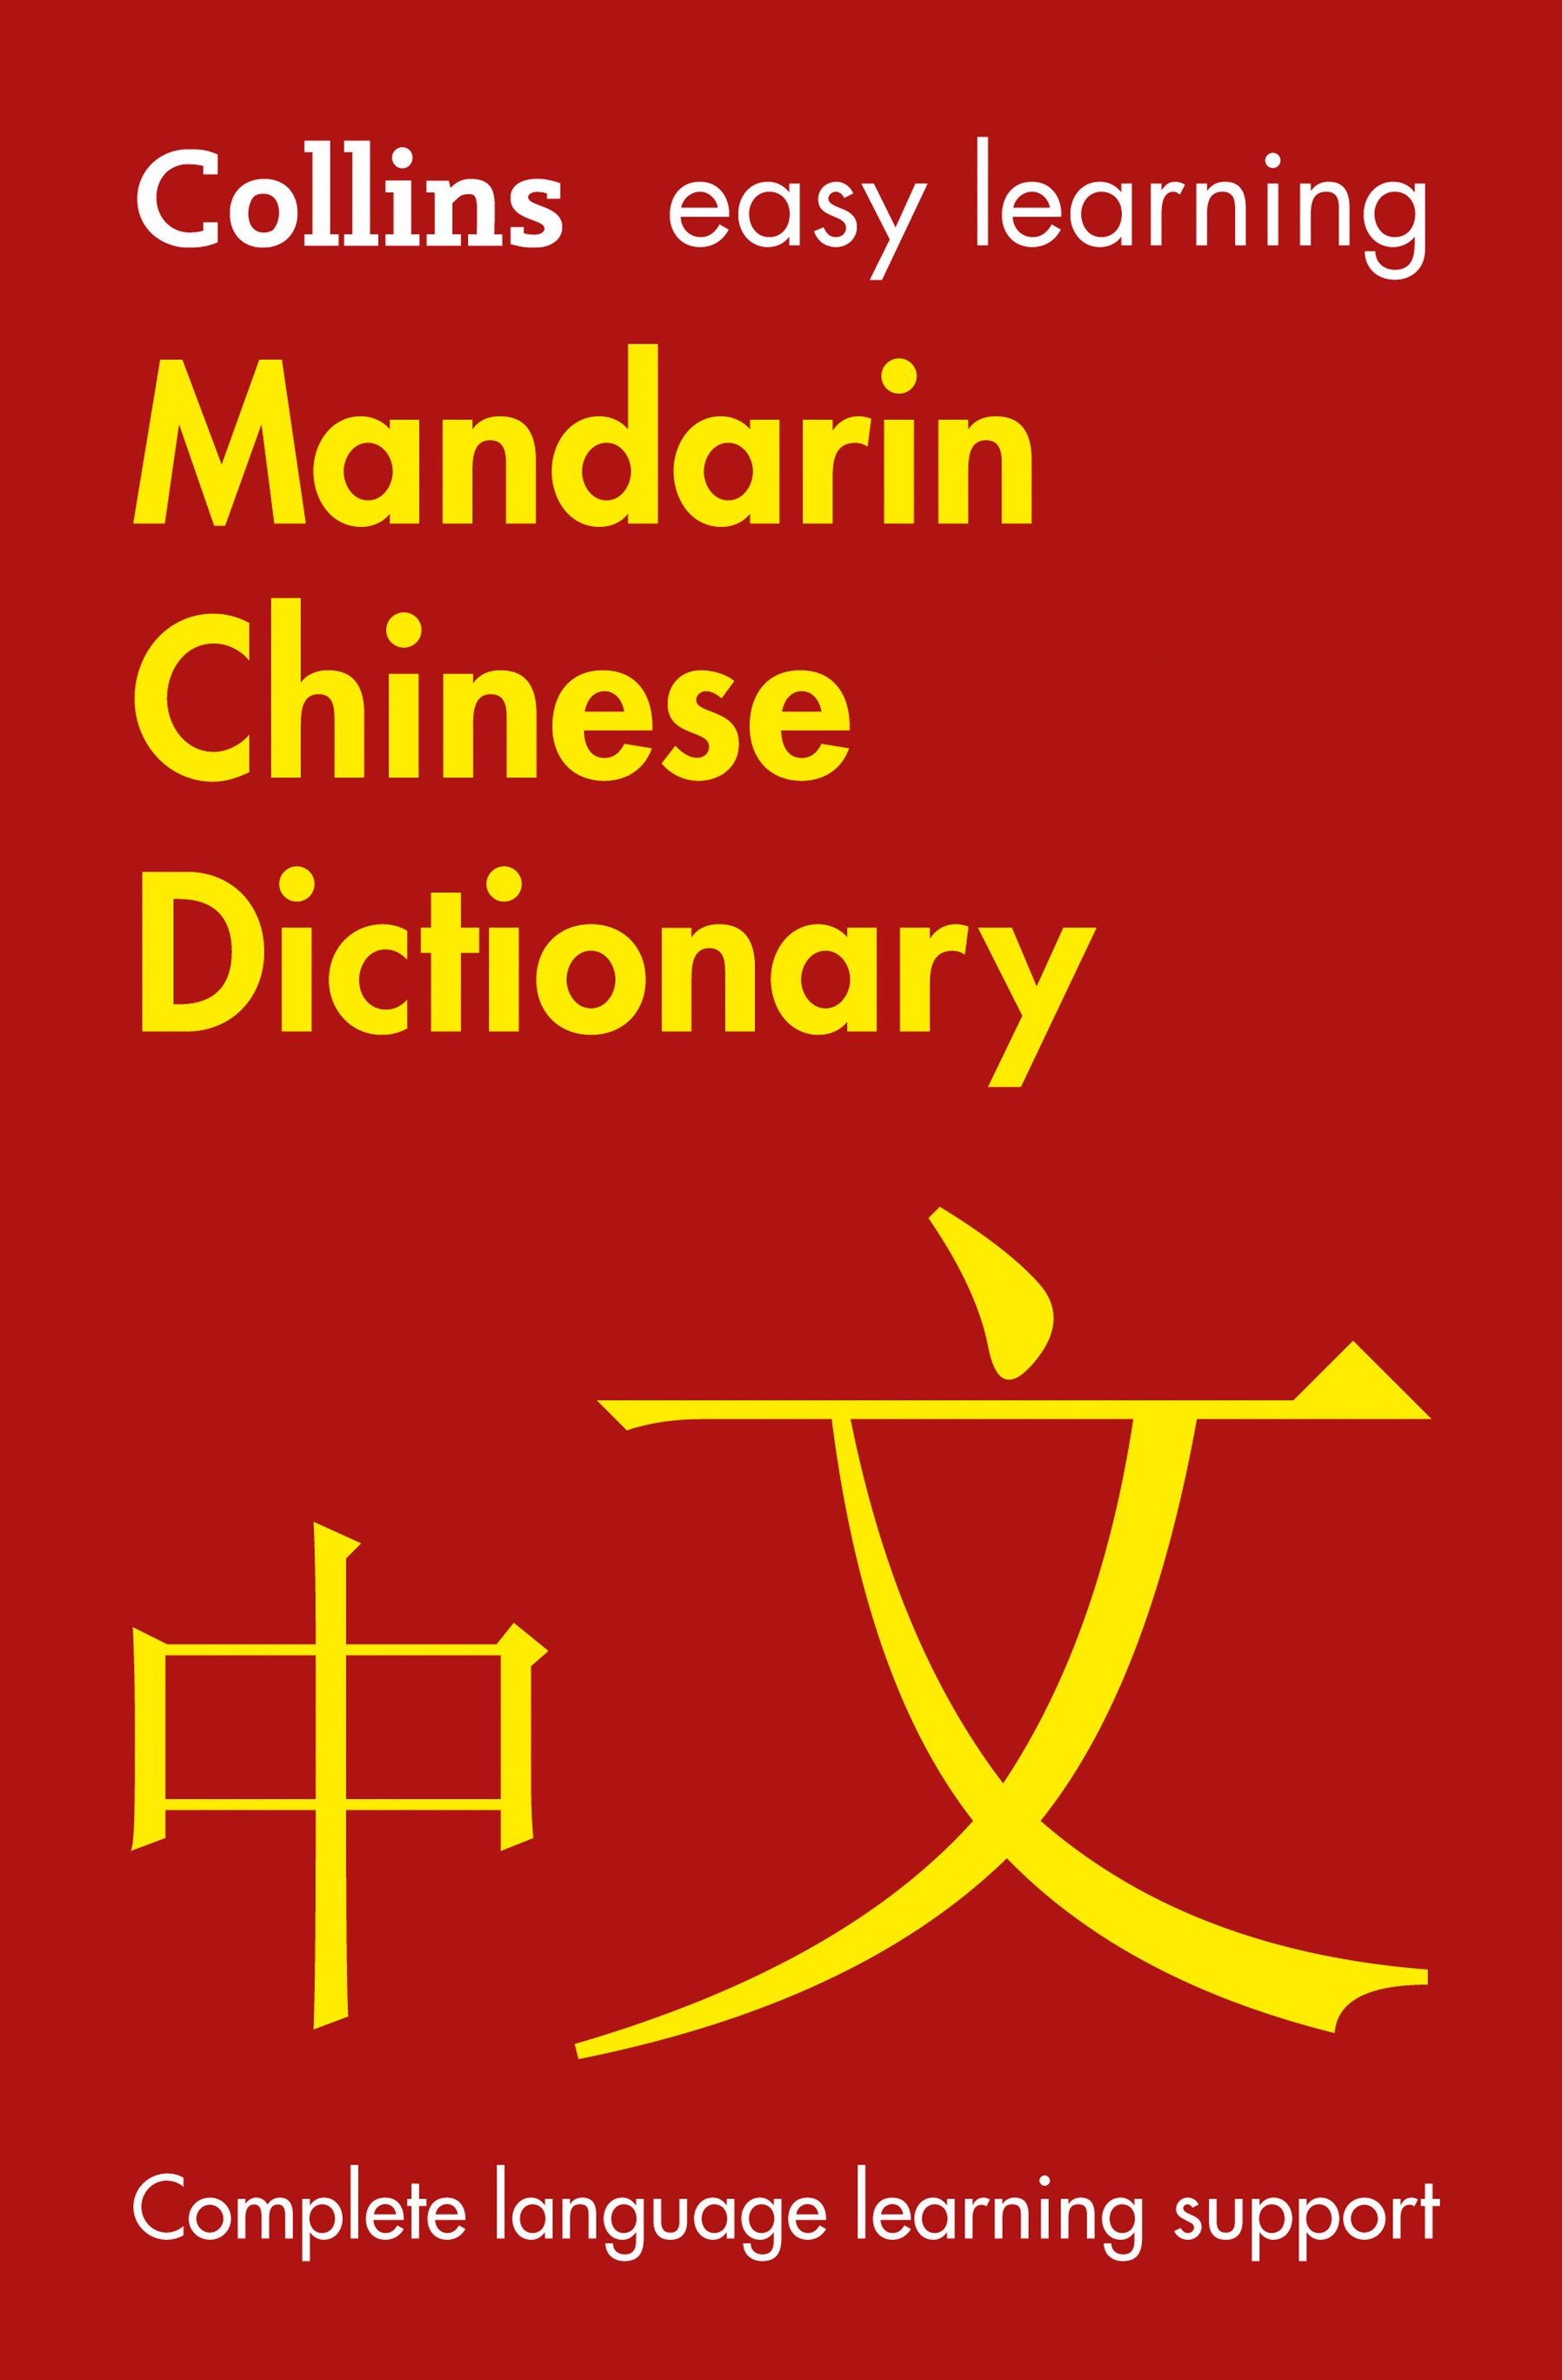 Collins Easy Learning Mandarin Chinese Dictionary [2nd Edition]